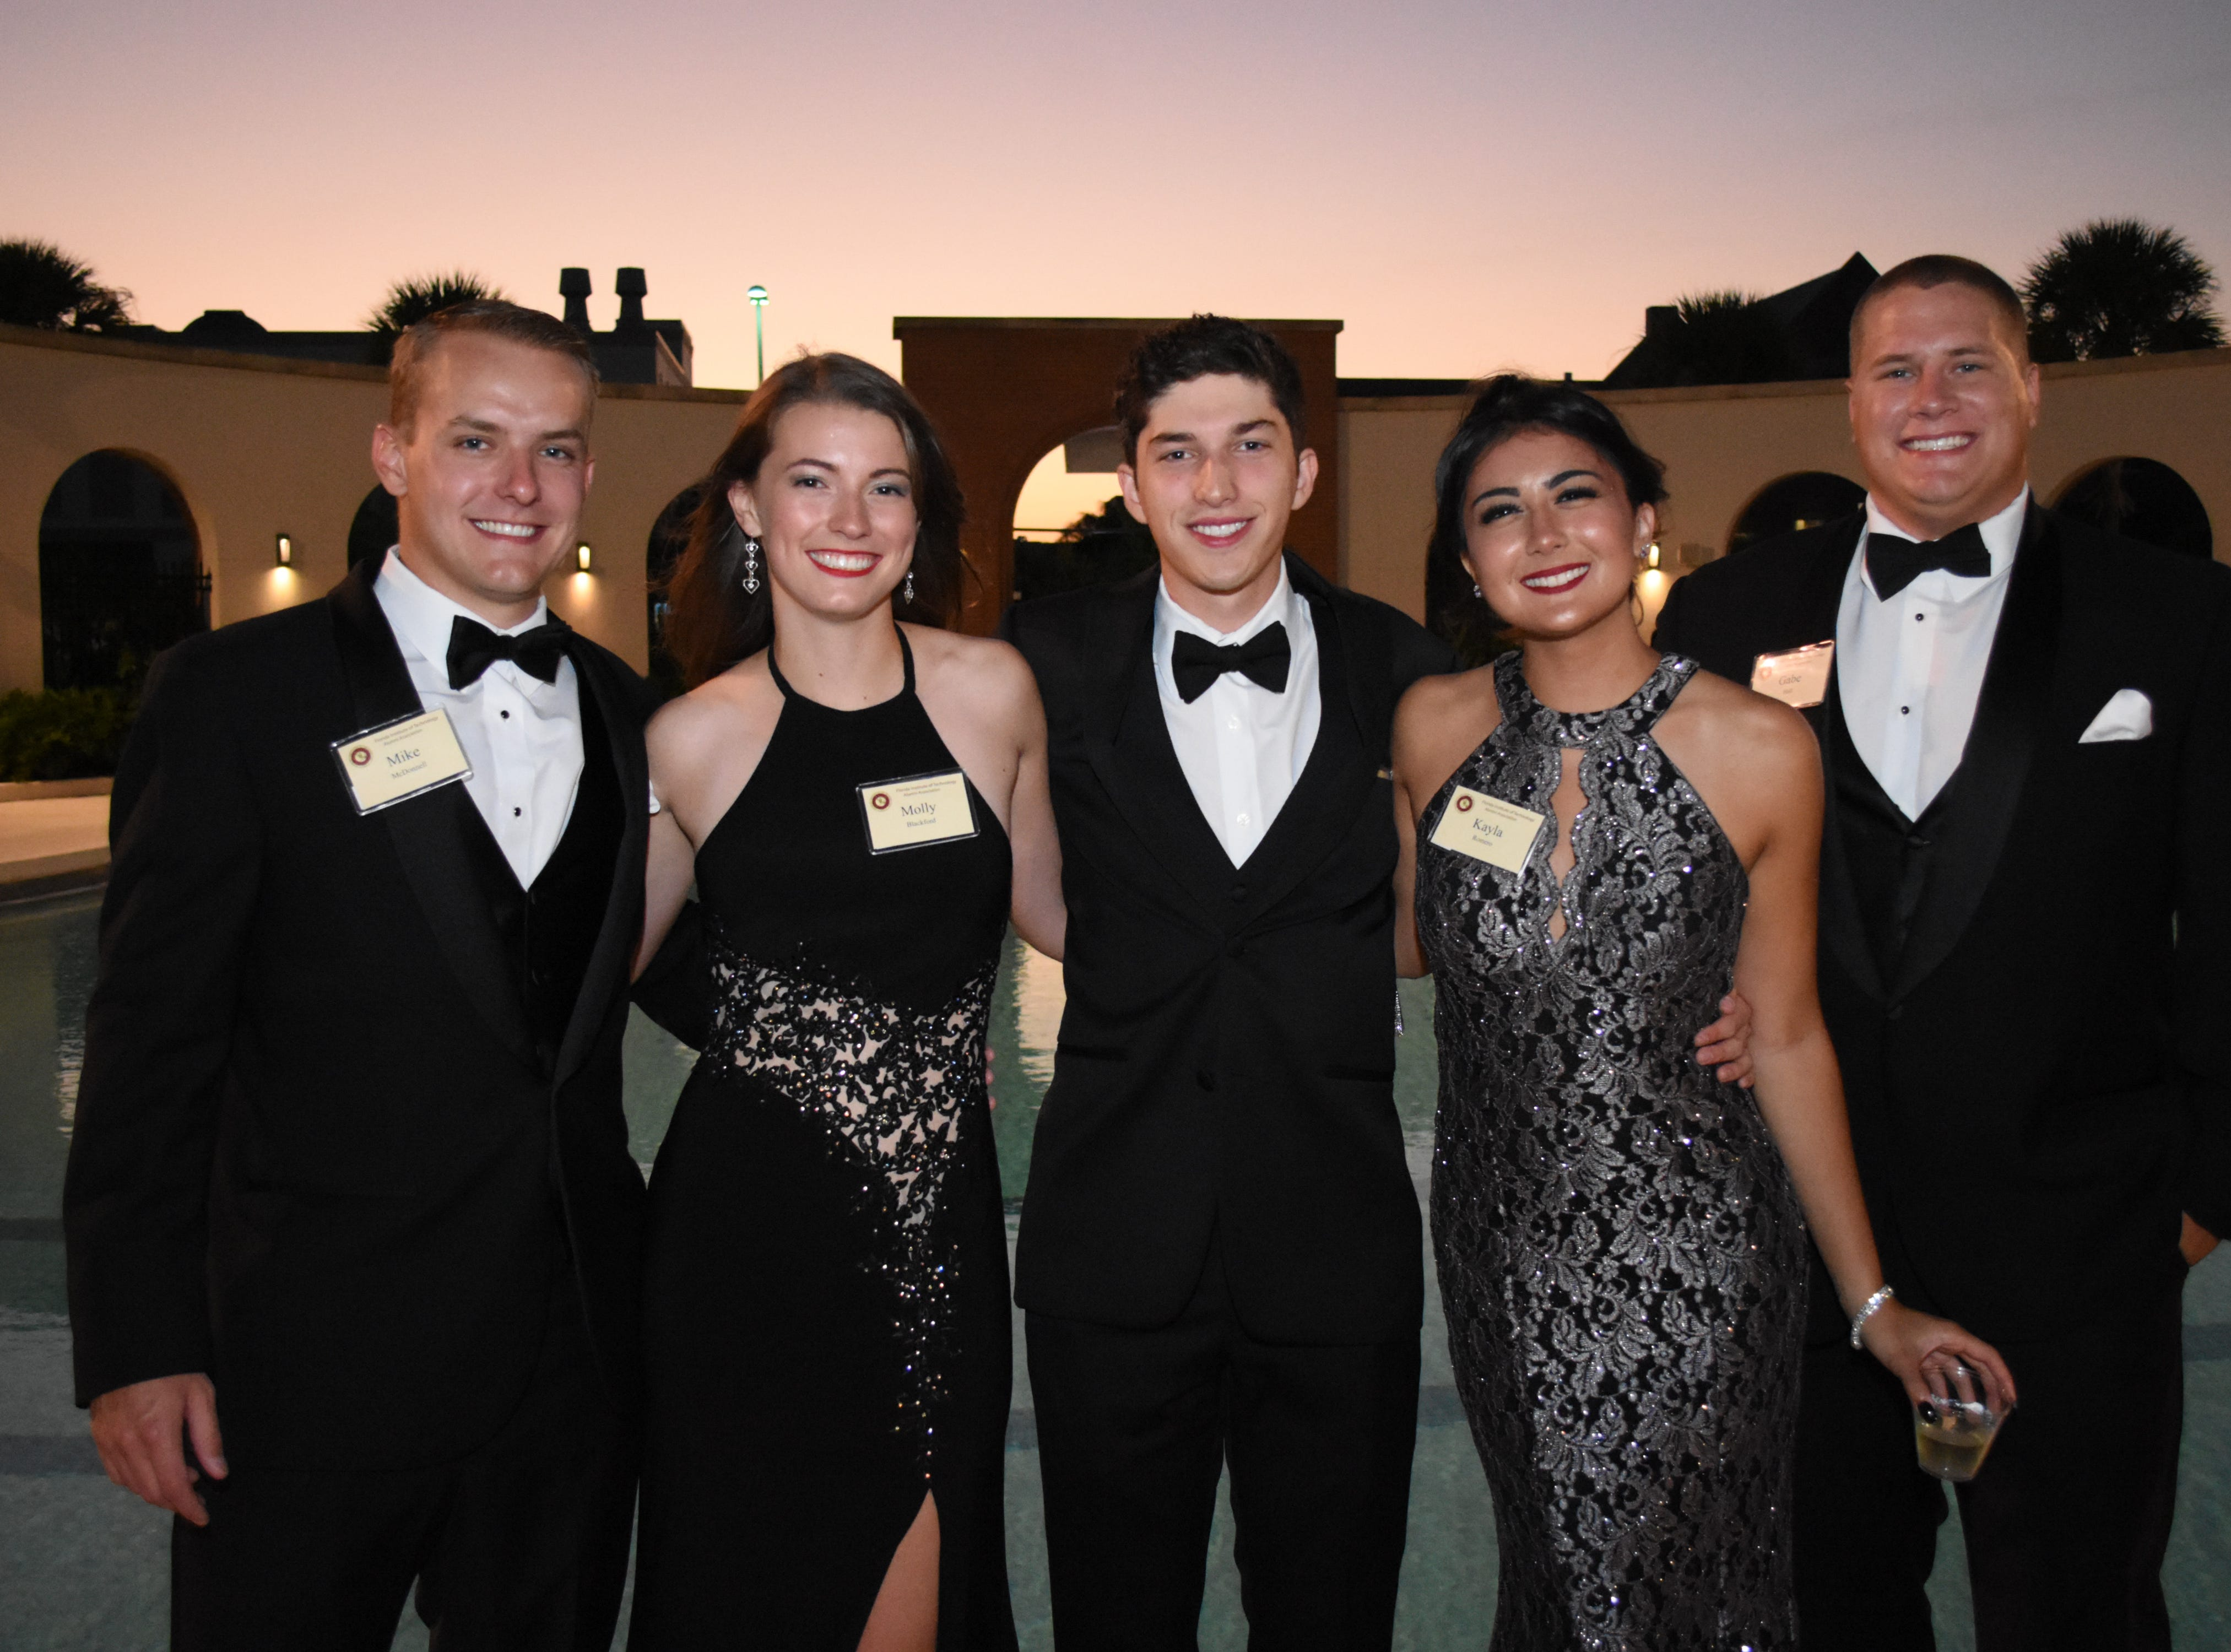 Mike McDonnell, Molly Blackford, Chris Arguelles, Kayla Romero and Gabe Holt at Florida Tech's 60th Anniversary Homecoming Gala Oct. 13, 2018, at the Clemente Center.